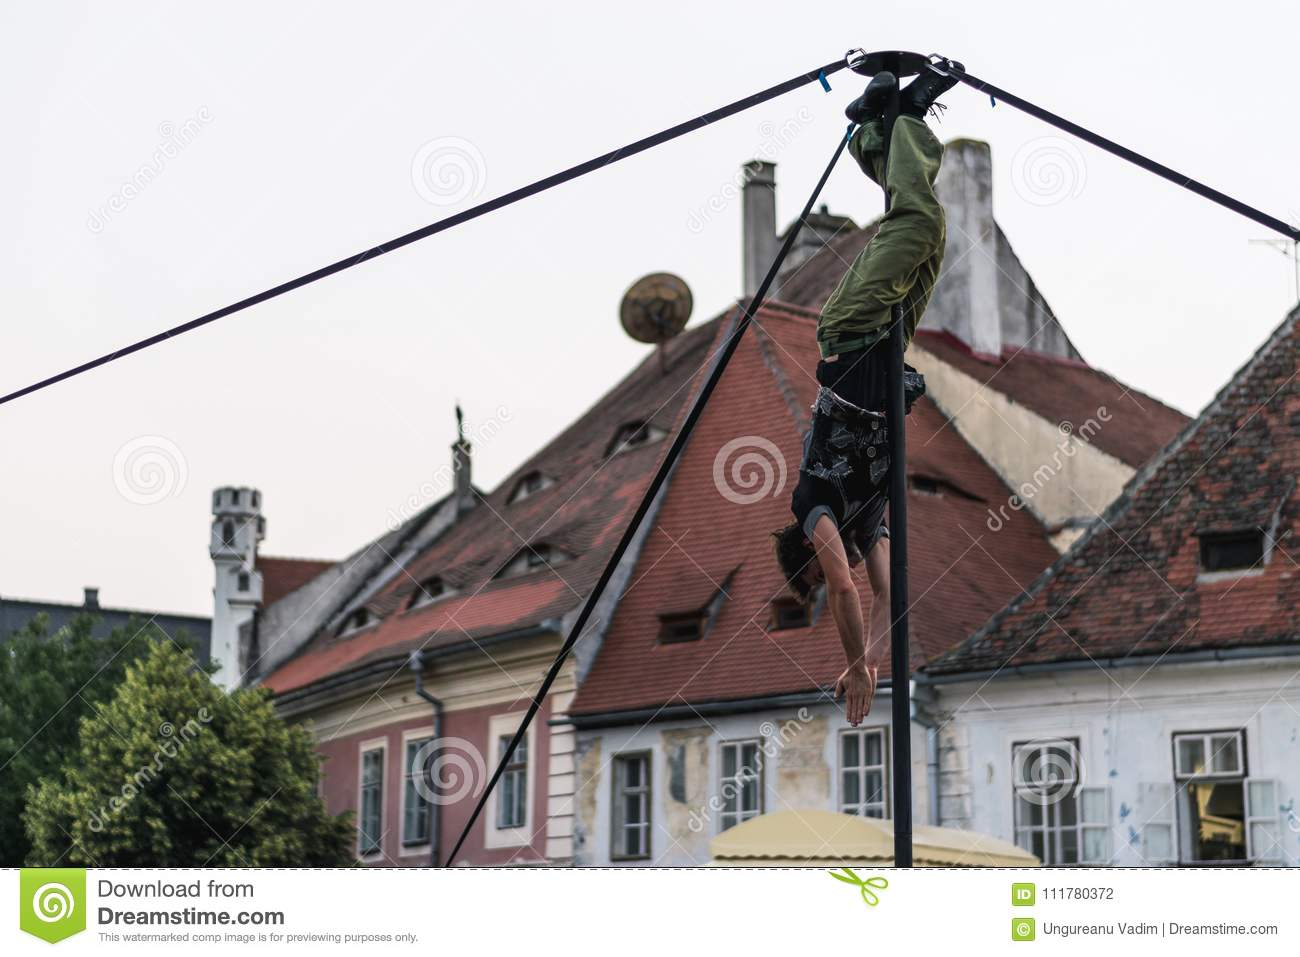 SIBIU, ROMANIA - 17 JUNE 2016: A member of Kinemtatos, Manoamano Circo, Argentina performing a trick on the metal bar in the Littl